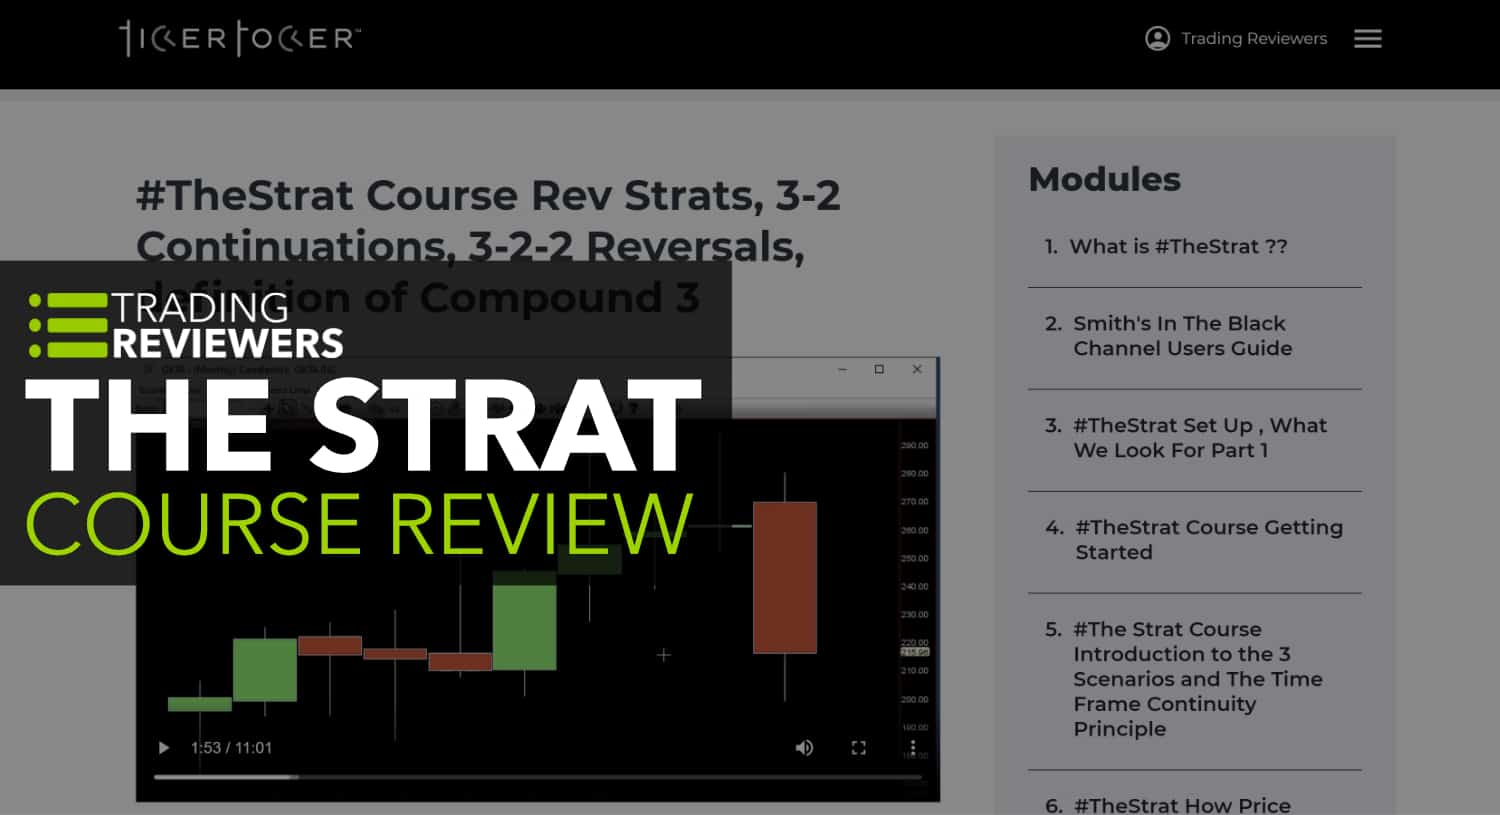 The Strat Course